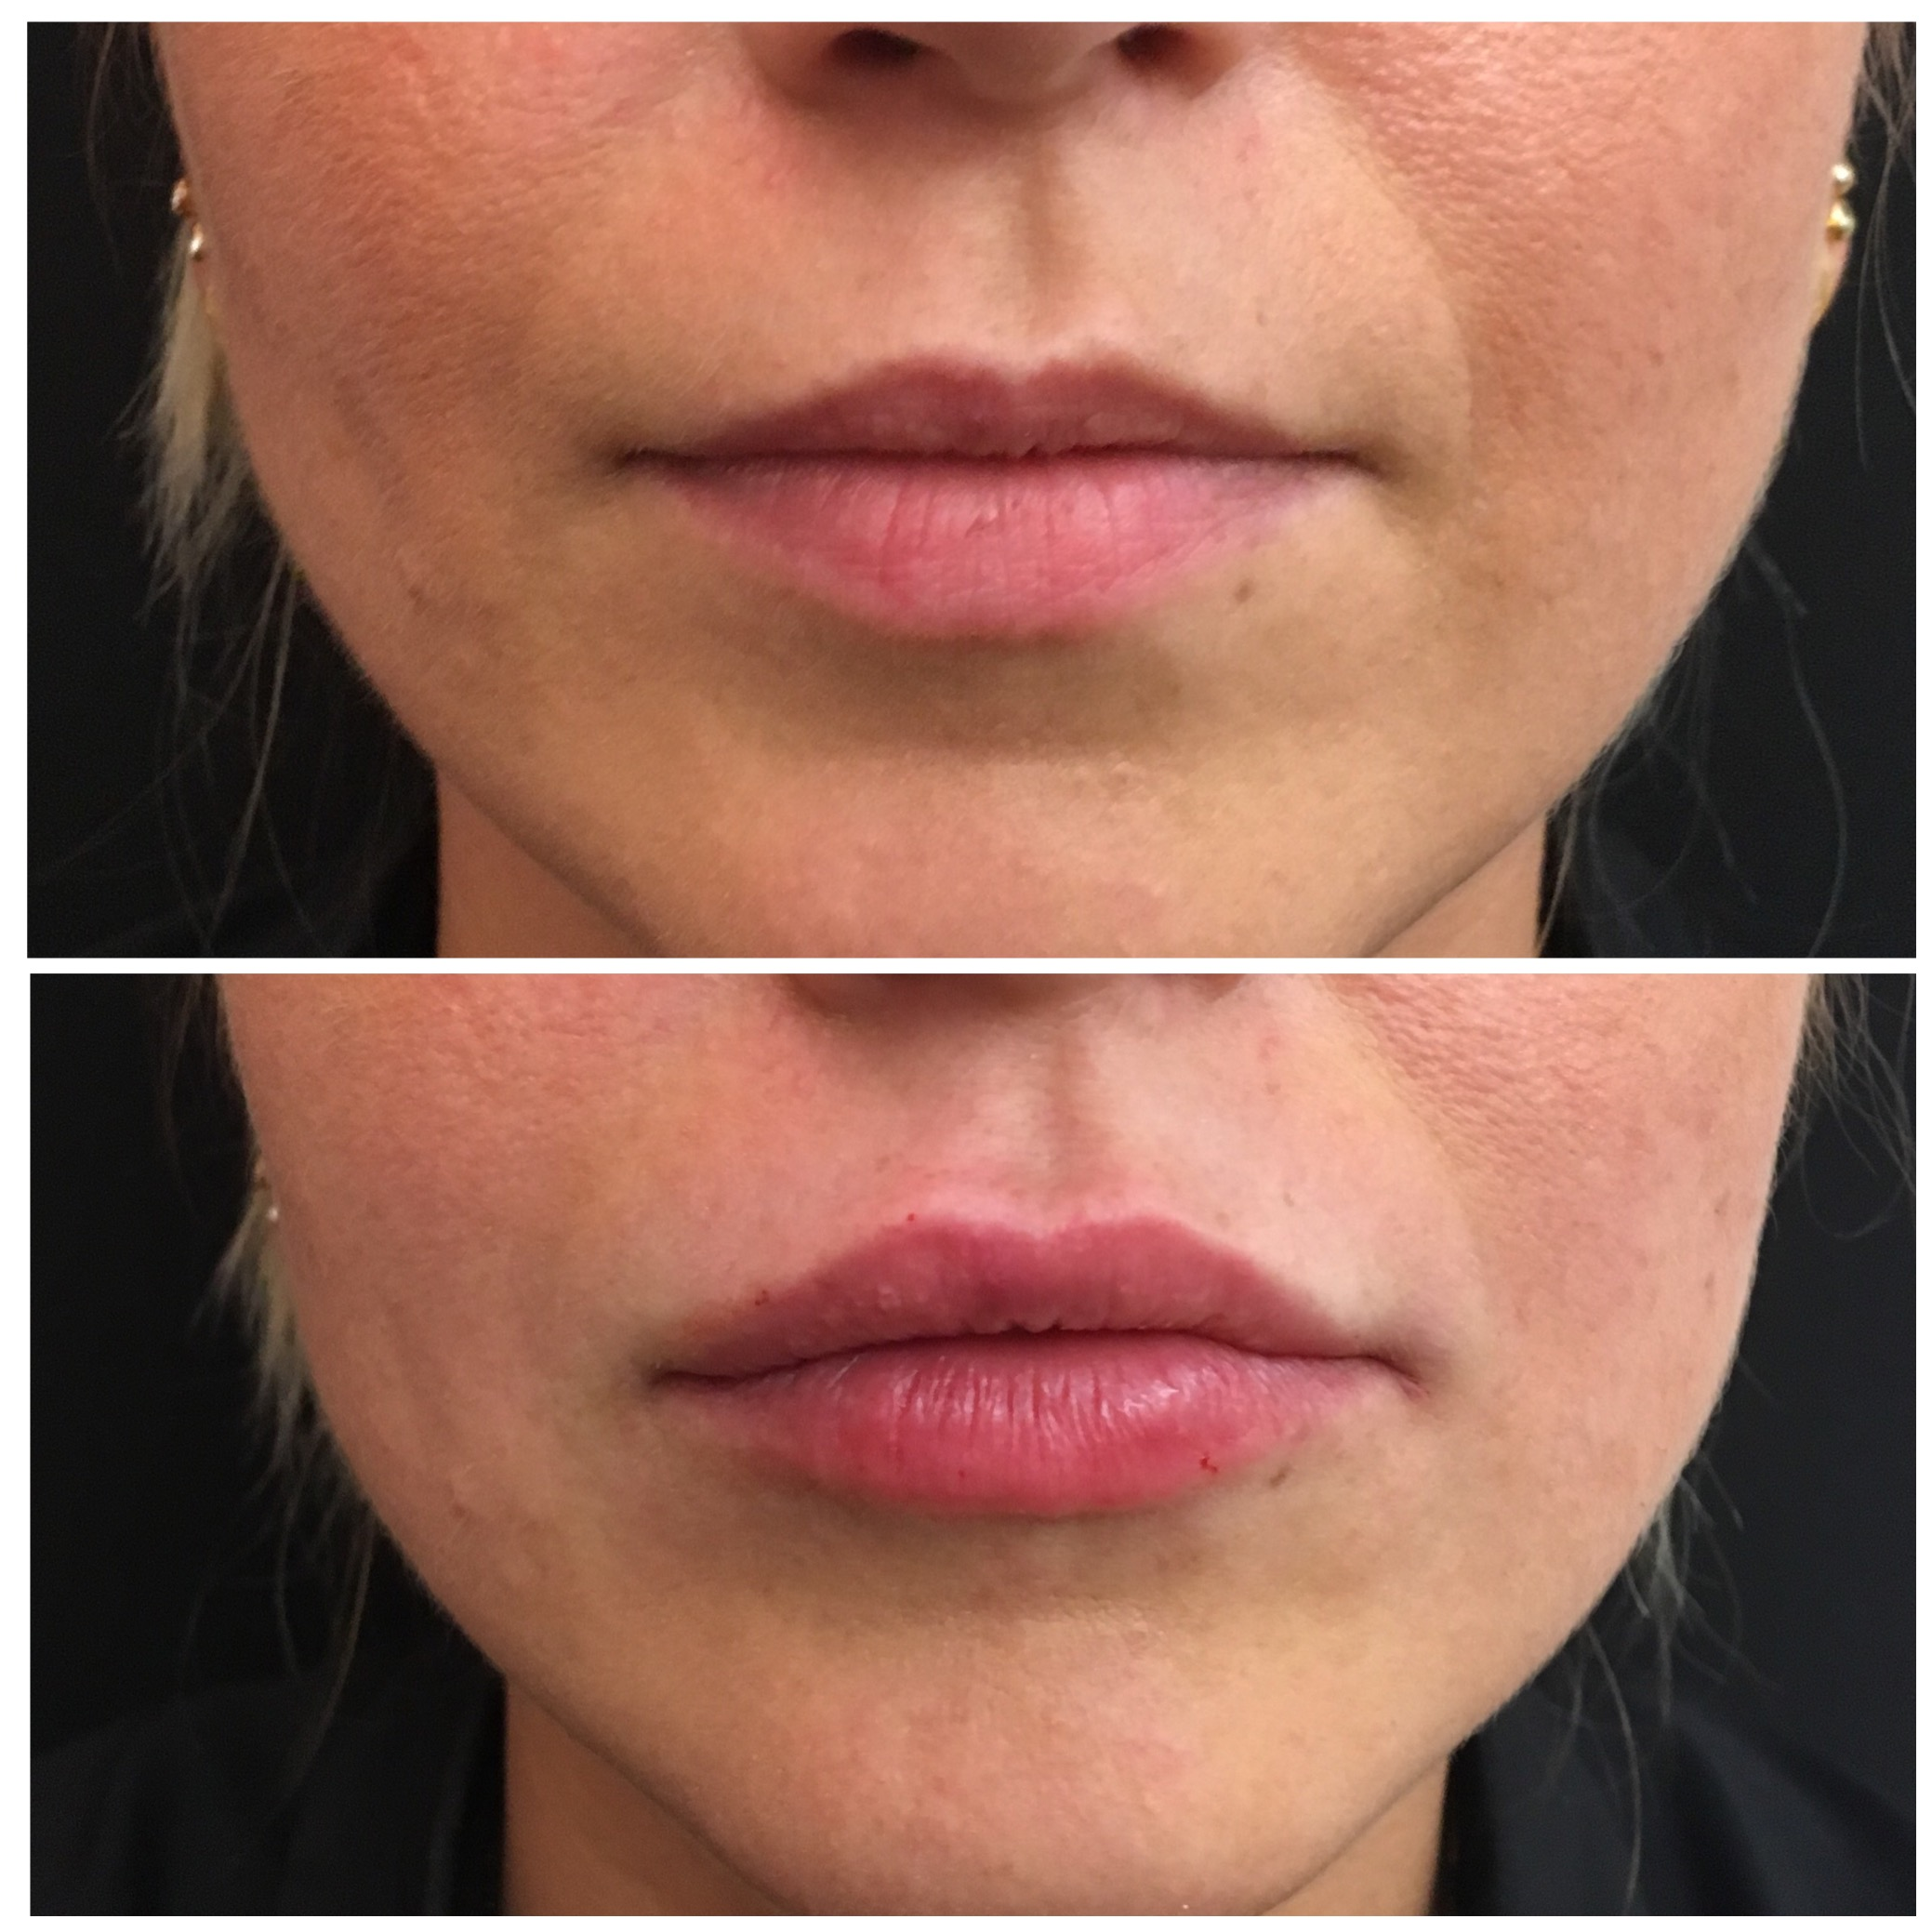 Lip augmentation can maintain the natural lip shape and create a plumpness to the lip volume and accentuate the cupids bow.